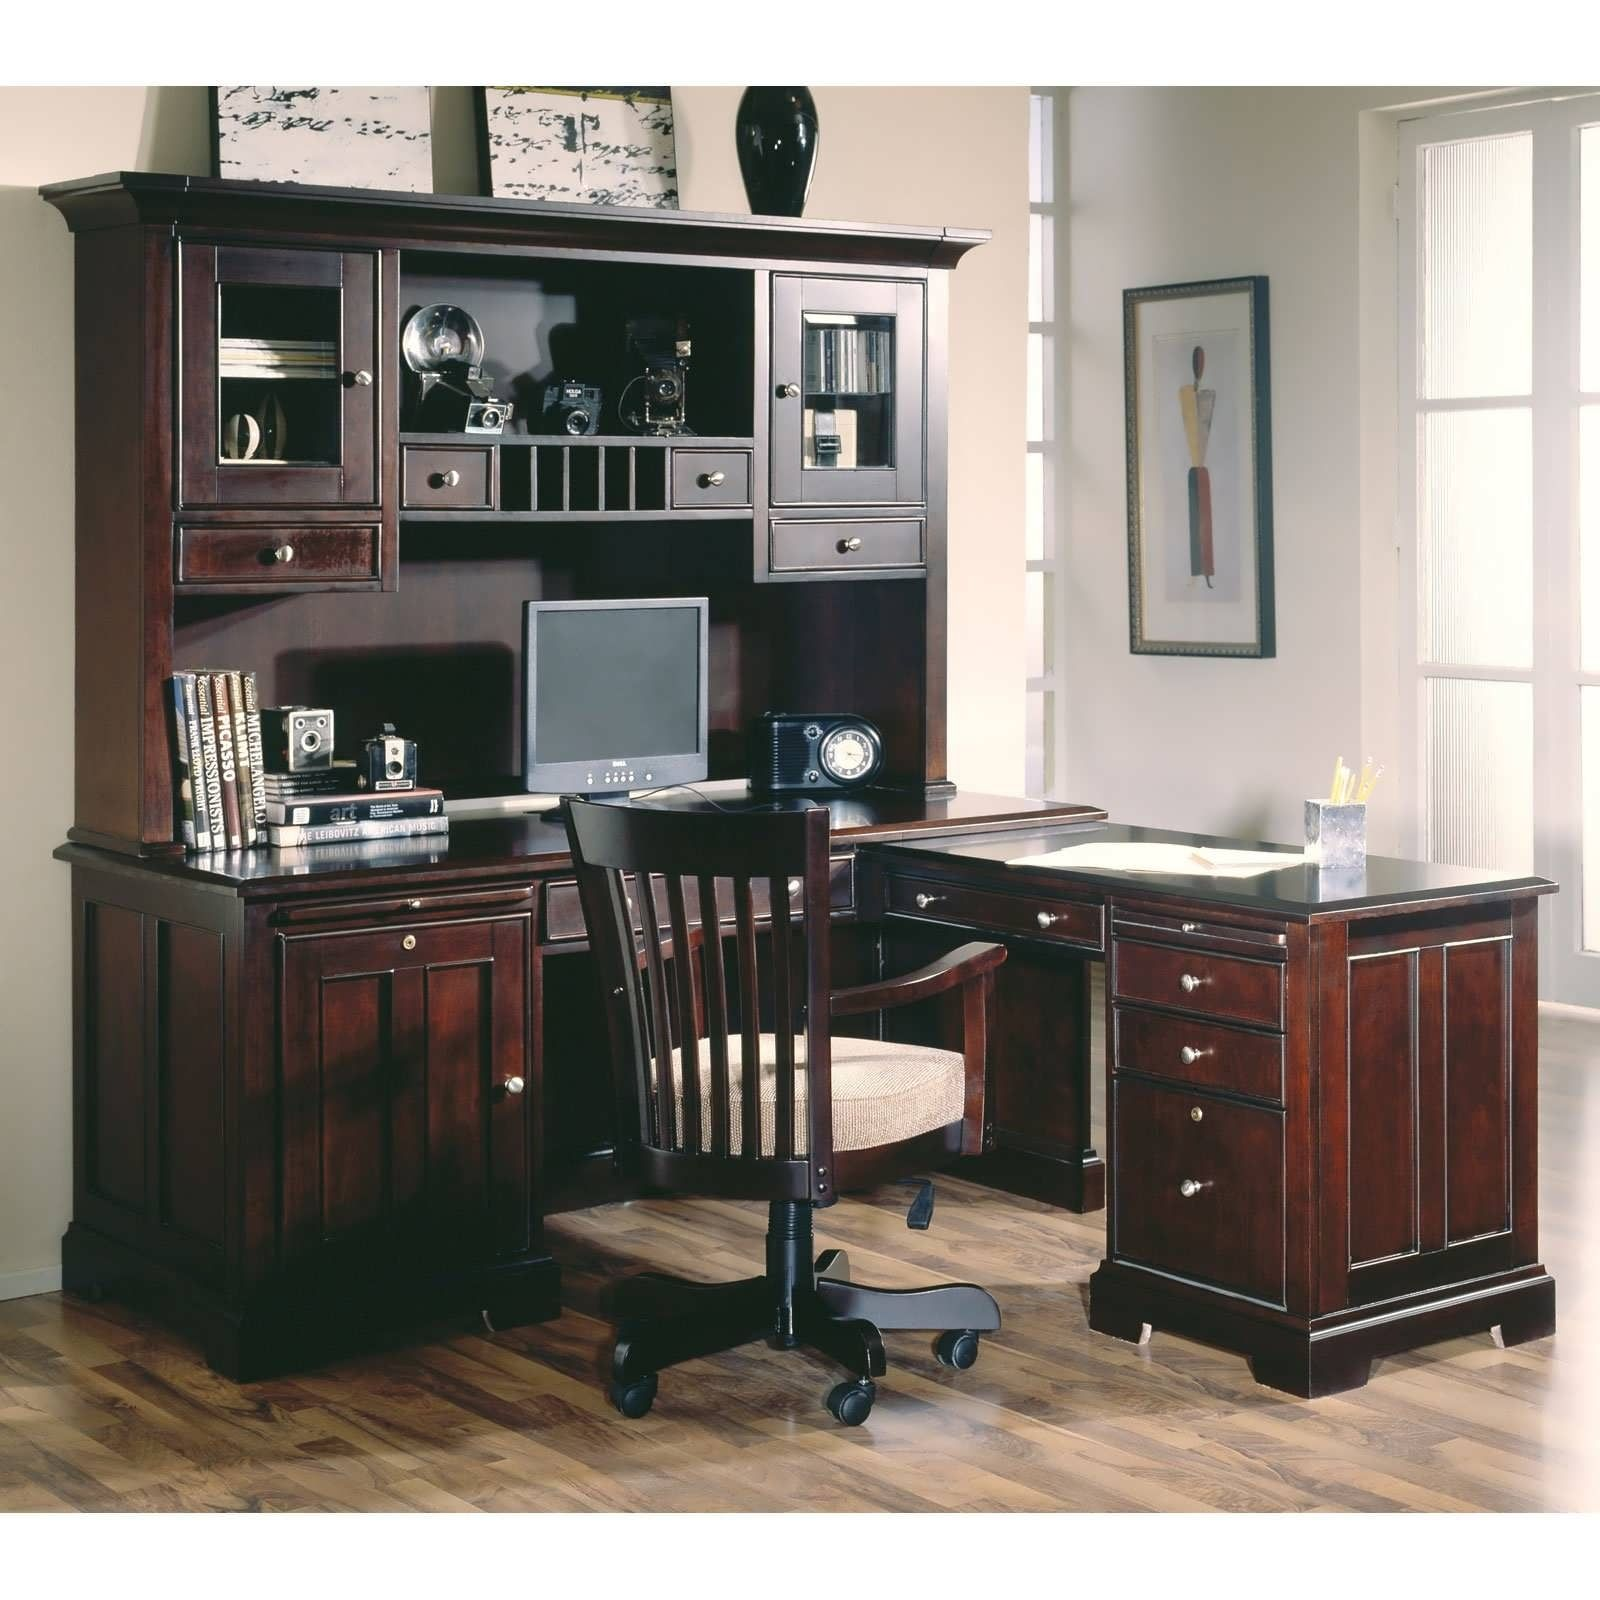 Home office desk and hutch set imanage pinterest